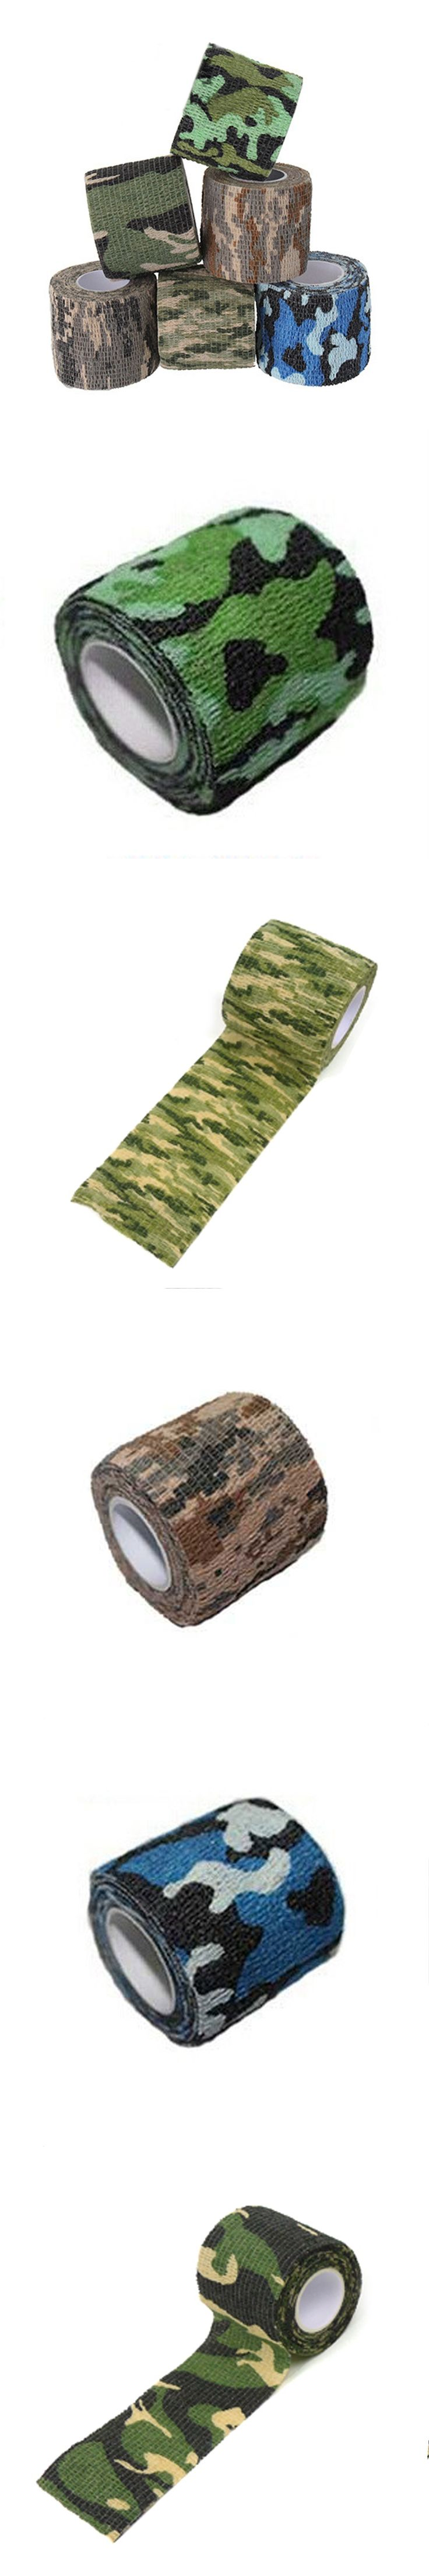 Camouflage Tape 1 Roll 5CMX4.5M Camo Stretch Bandage,Camping Hunting for Gun,Cloths Hot,Outdoor Military Camo Tape